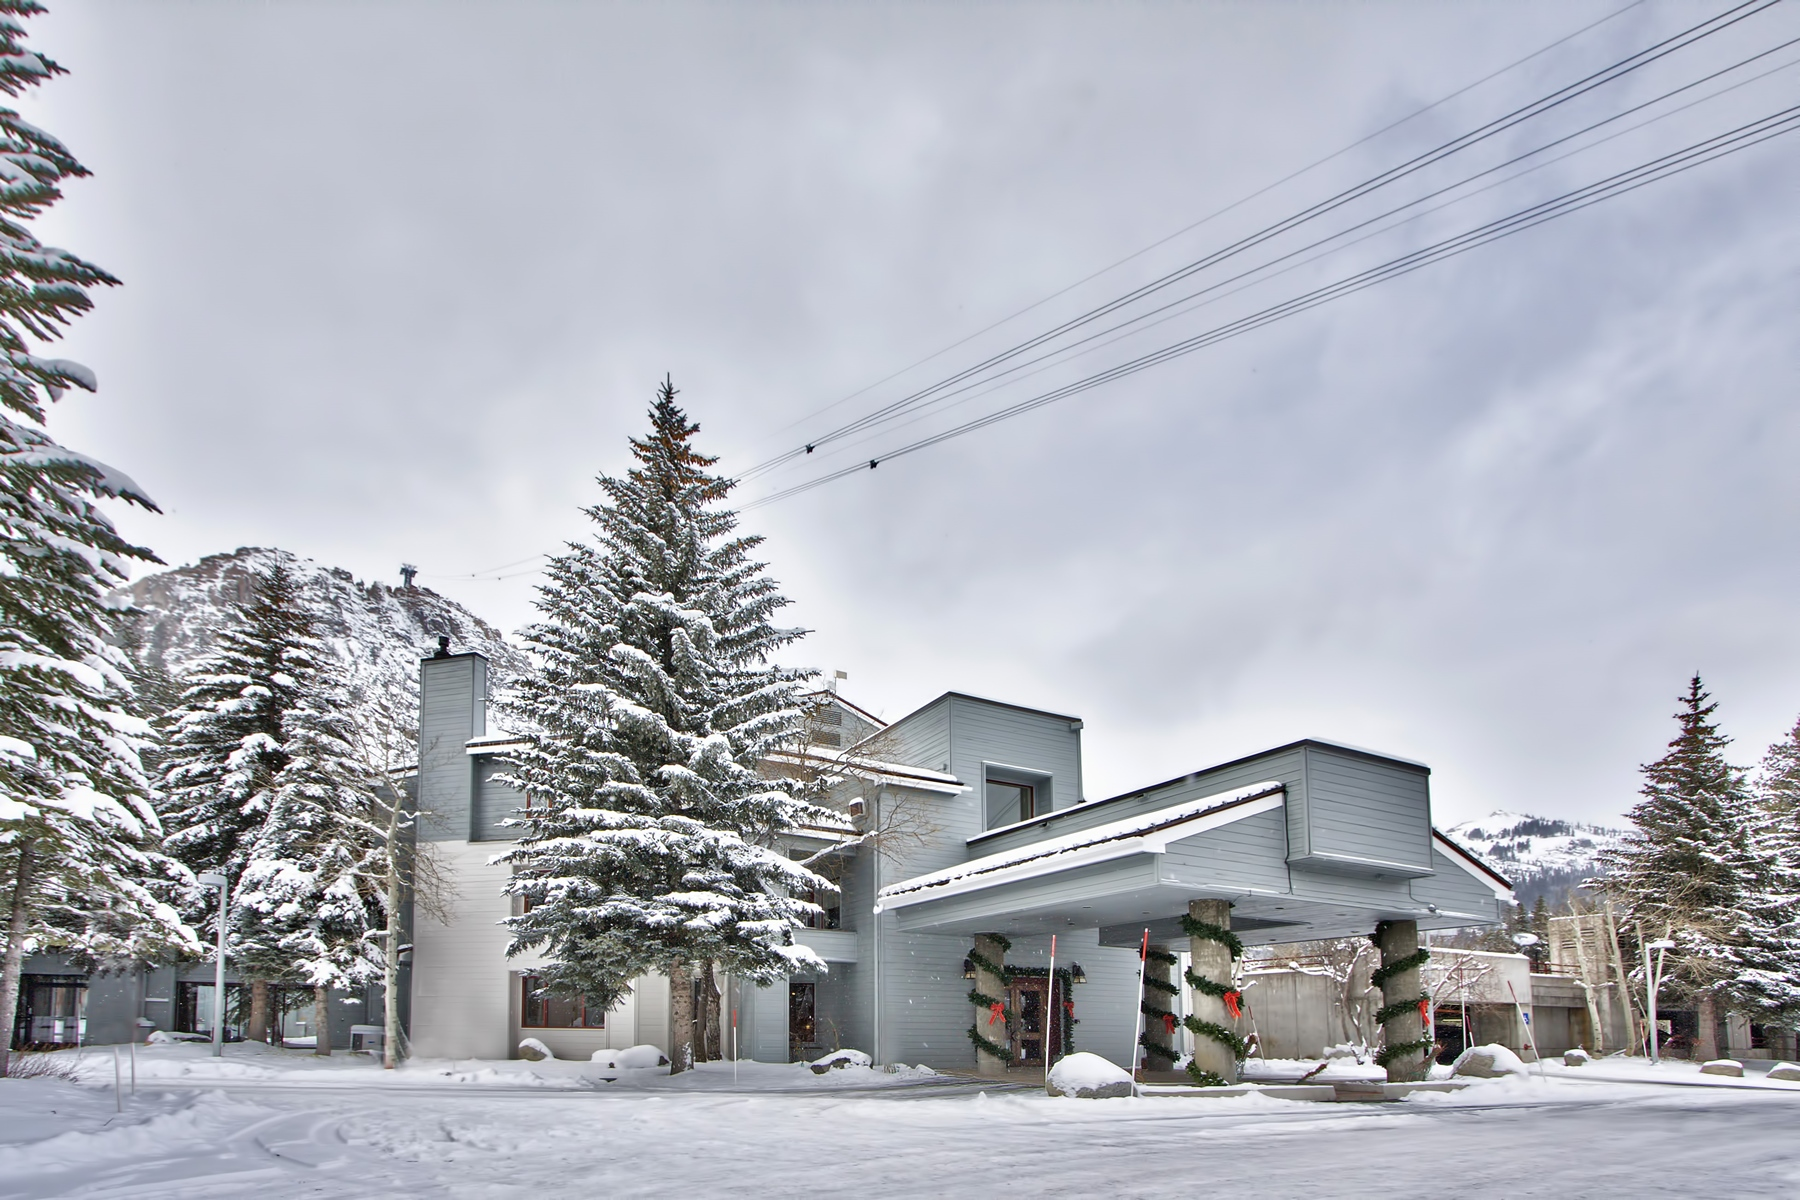 Additional photo for property listing at 201 Squaw Peak Road #710, Olympic Valley, CA 201 Squaw Peak Road #710 Olympic Valley, California 96146 United States